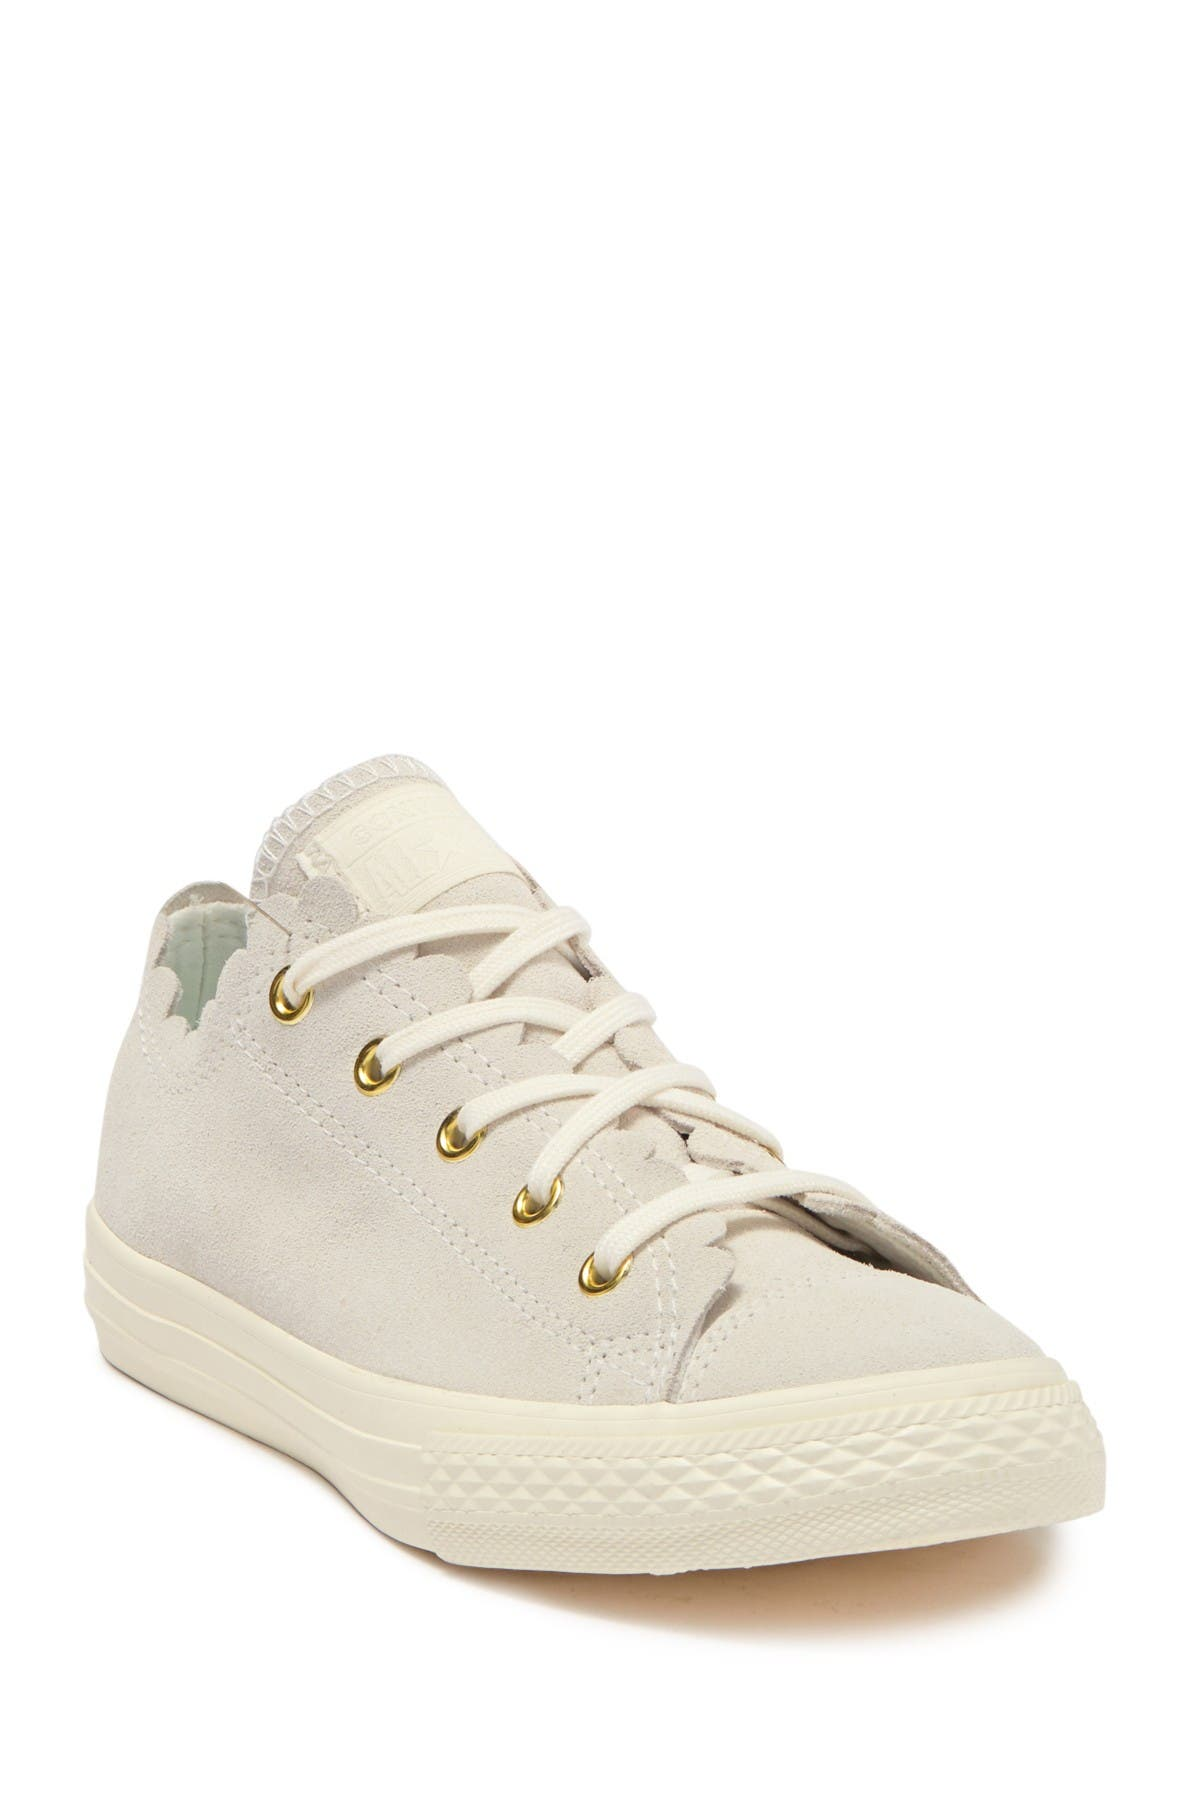 Image of Converse Frilly Thrills Sneaker